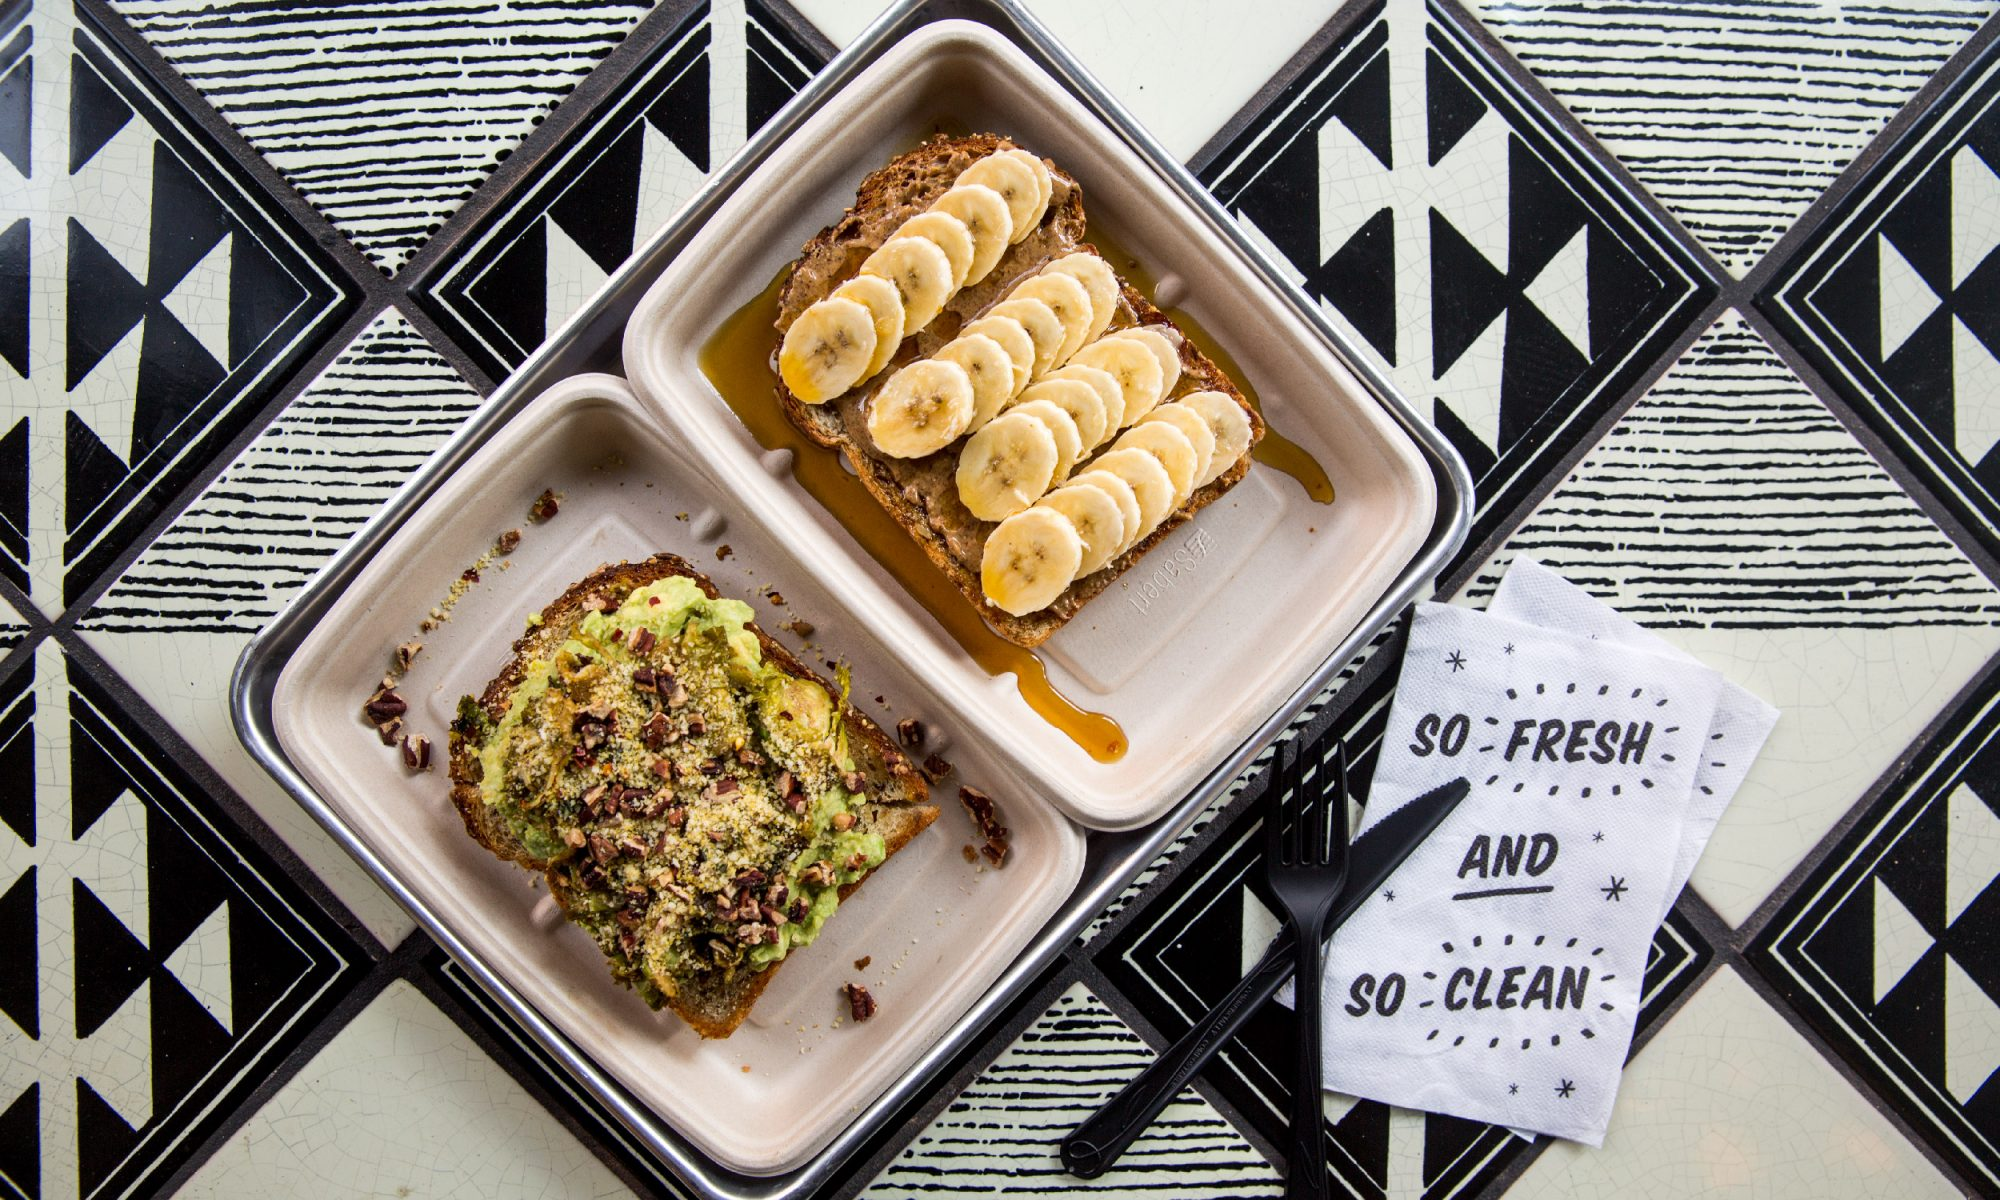 EC: A Look at By Chloe's New Vegan Breakfast Menu